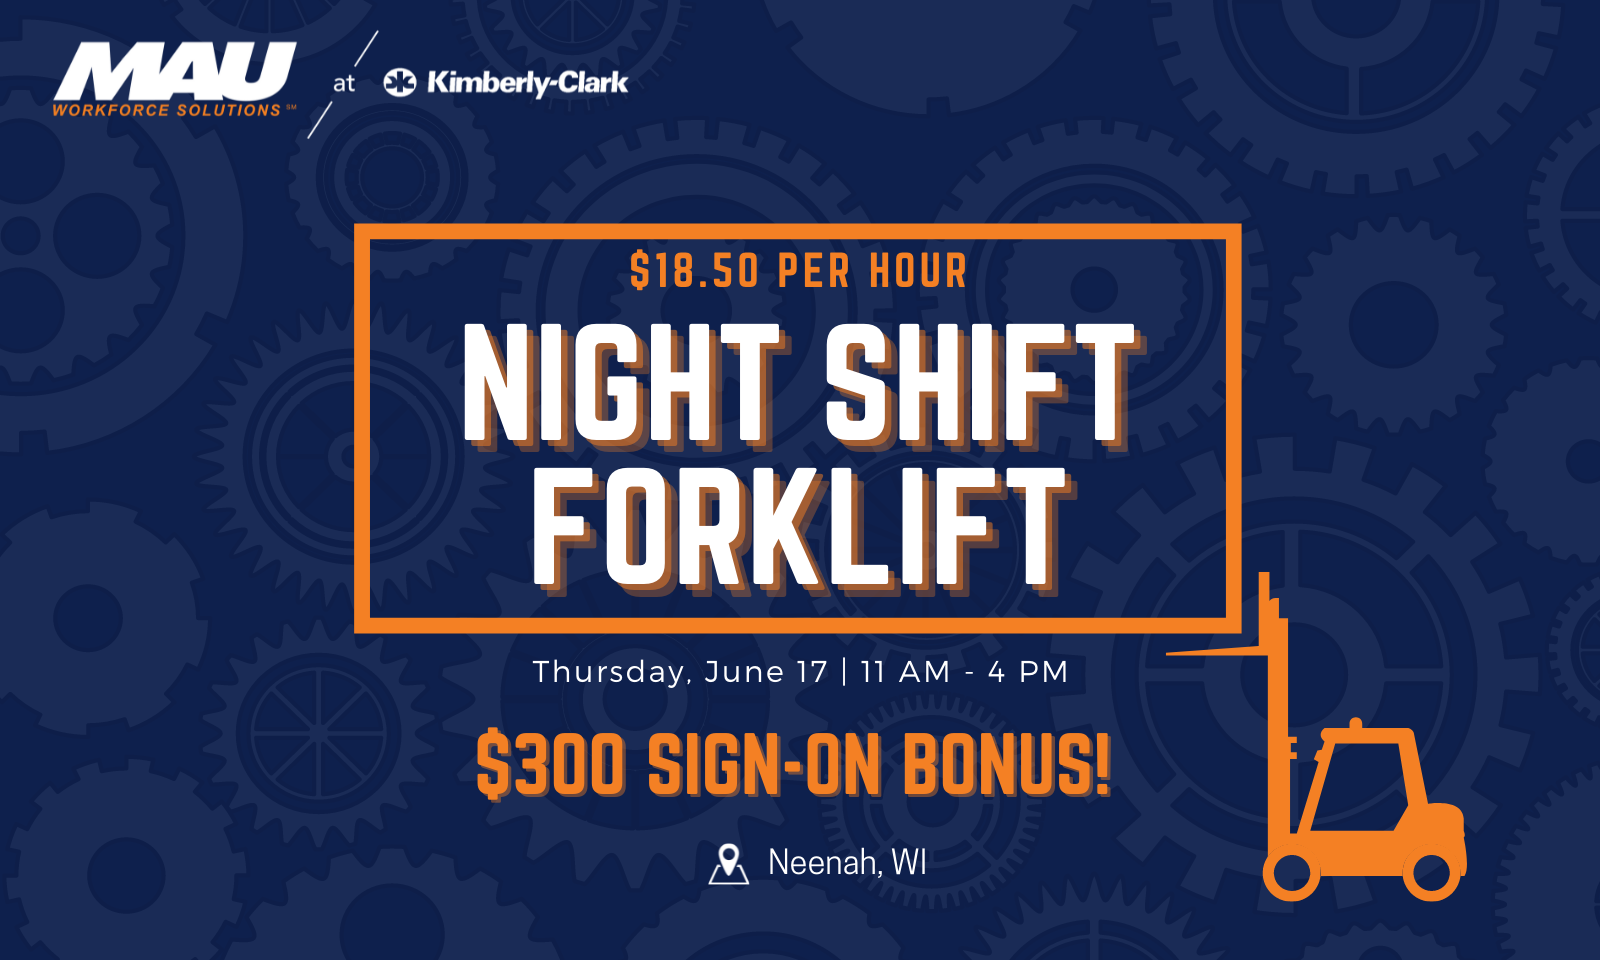 MAU at Kimberly-Clark Hiring Event for Night Shift Forklift!